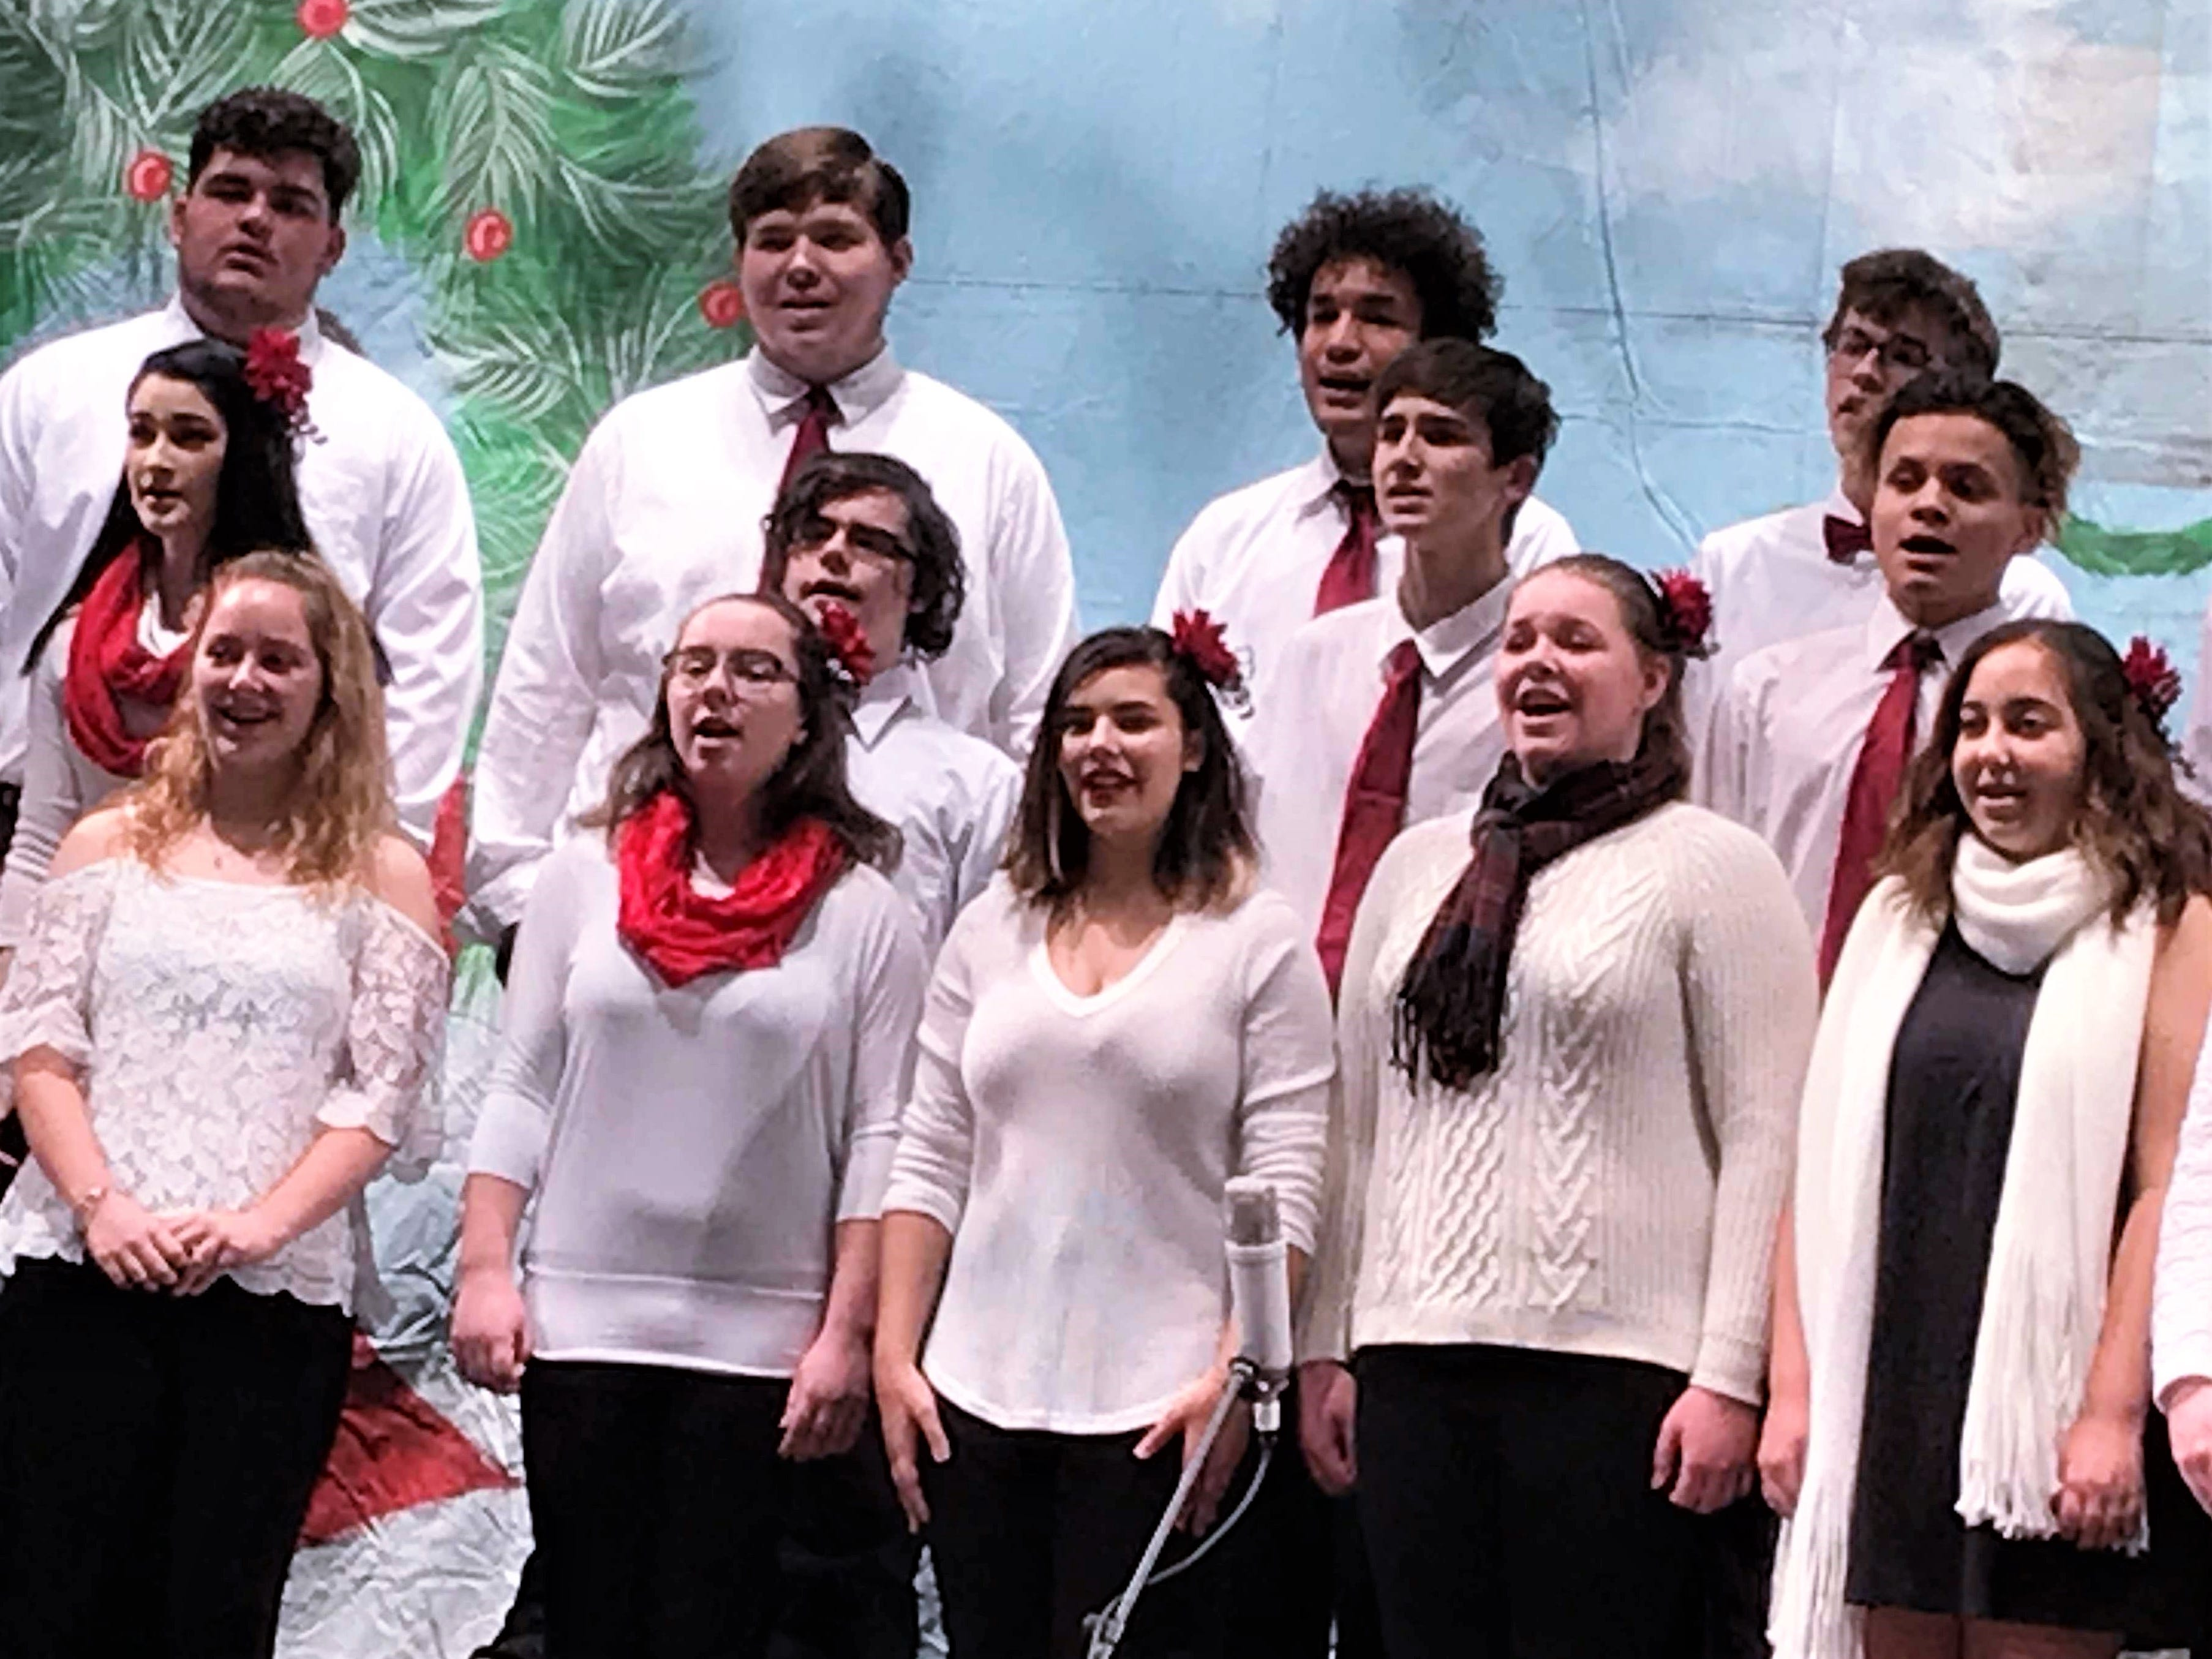 Members of the Elmira High School choral group perform during Sunday's annual Arctic League broadcast.